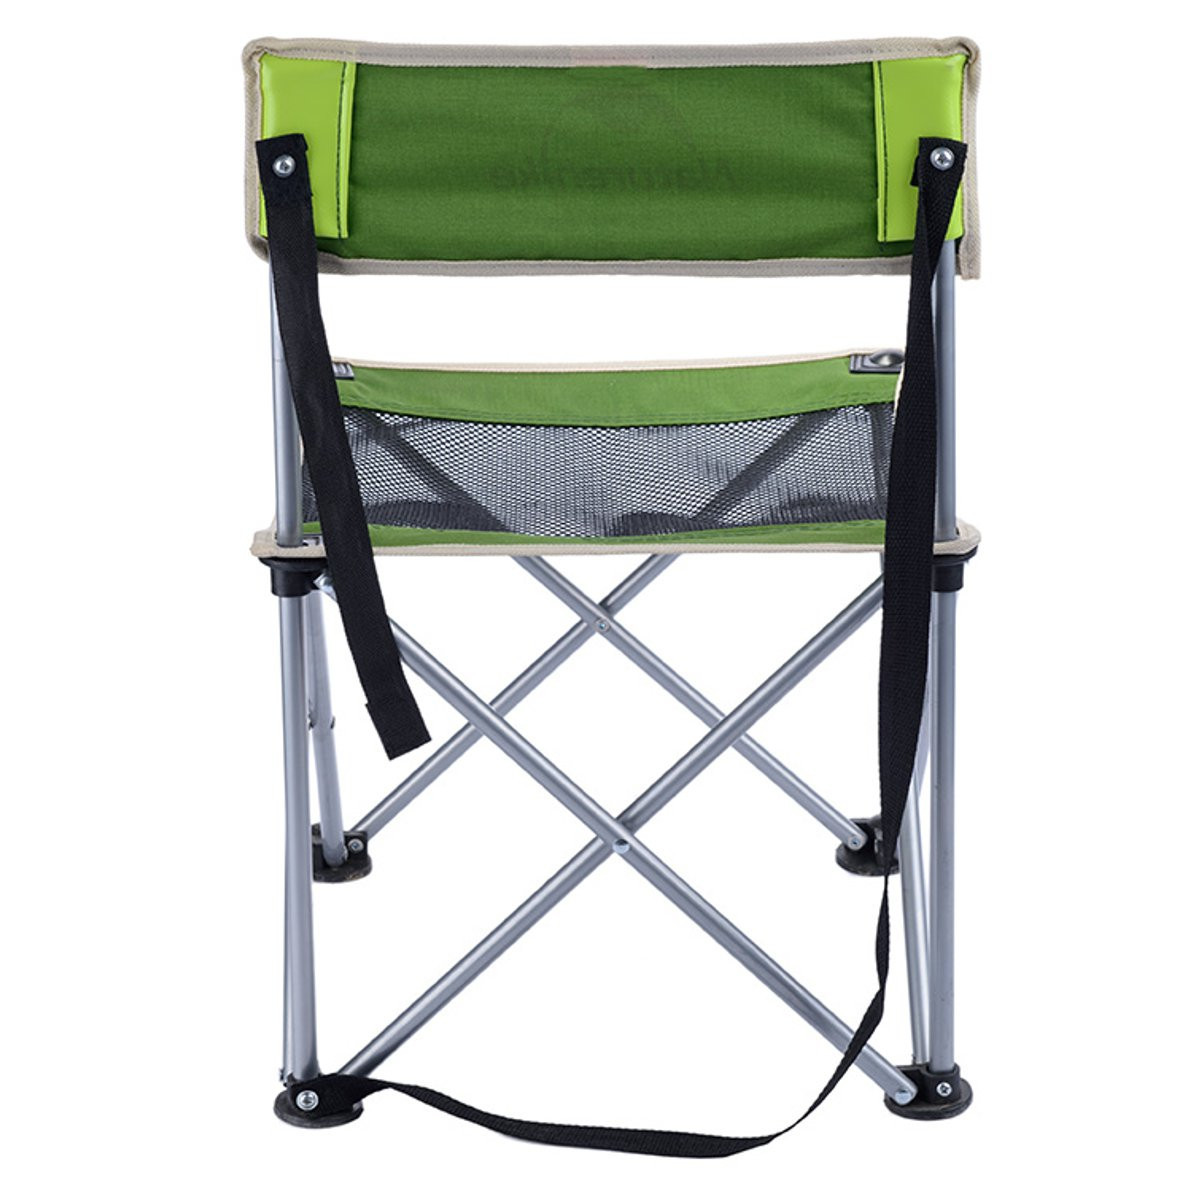 Best ideas about Portable Folding Chair . Save or Pin Outdoor Camping Portable Folding Chair Lightweight Fishing Now.